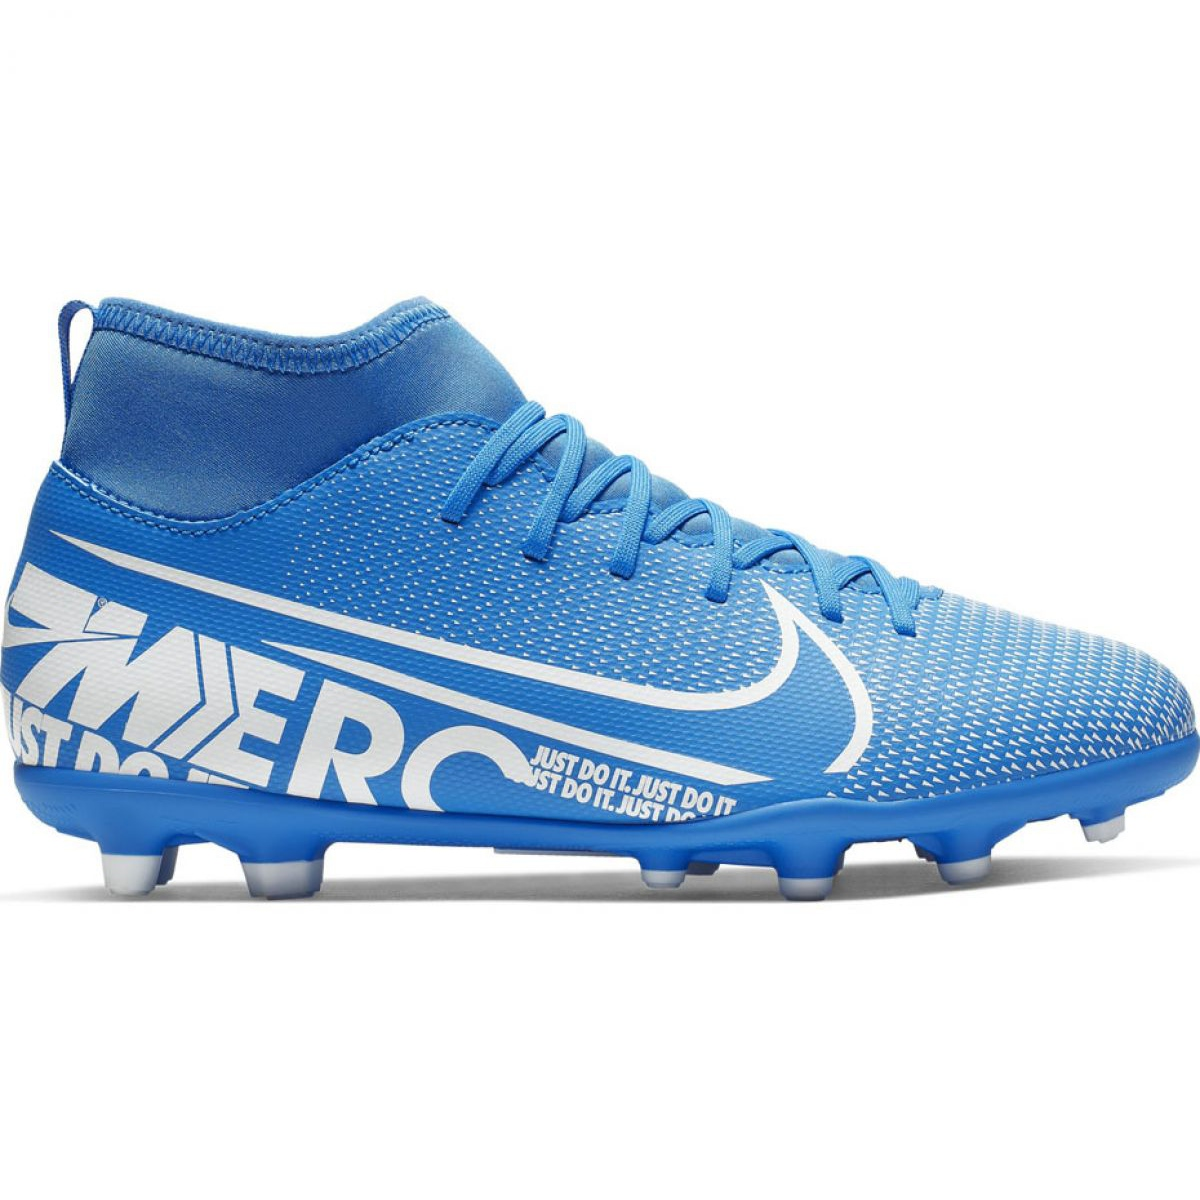 Botas de fútbol Nike Mercurial Superfly 7 Club FG MG Jr